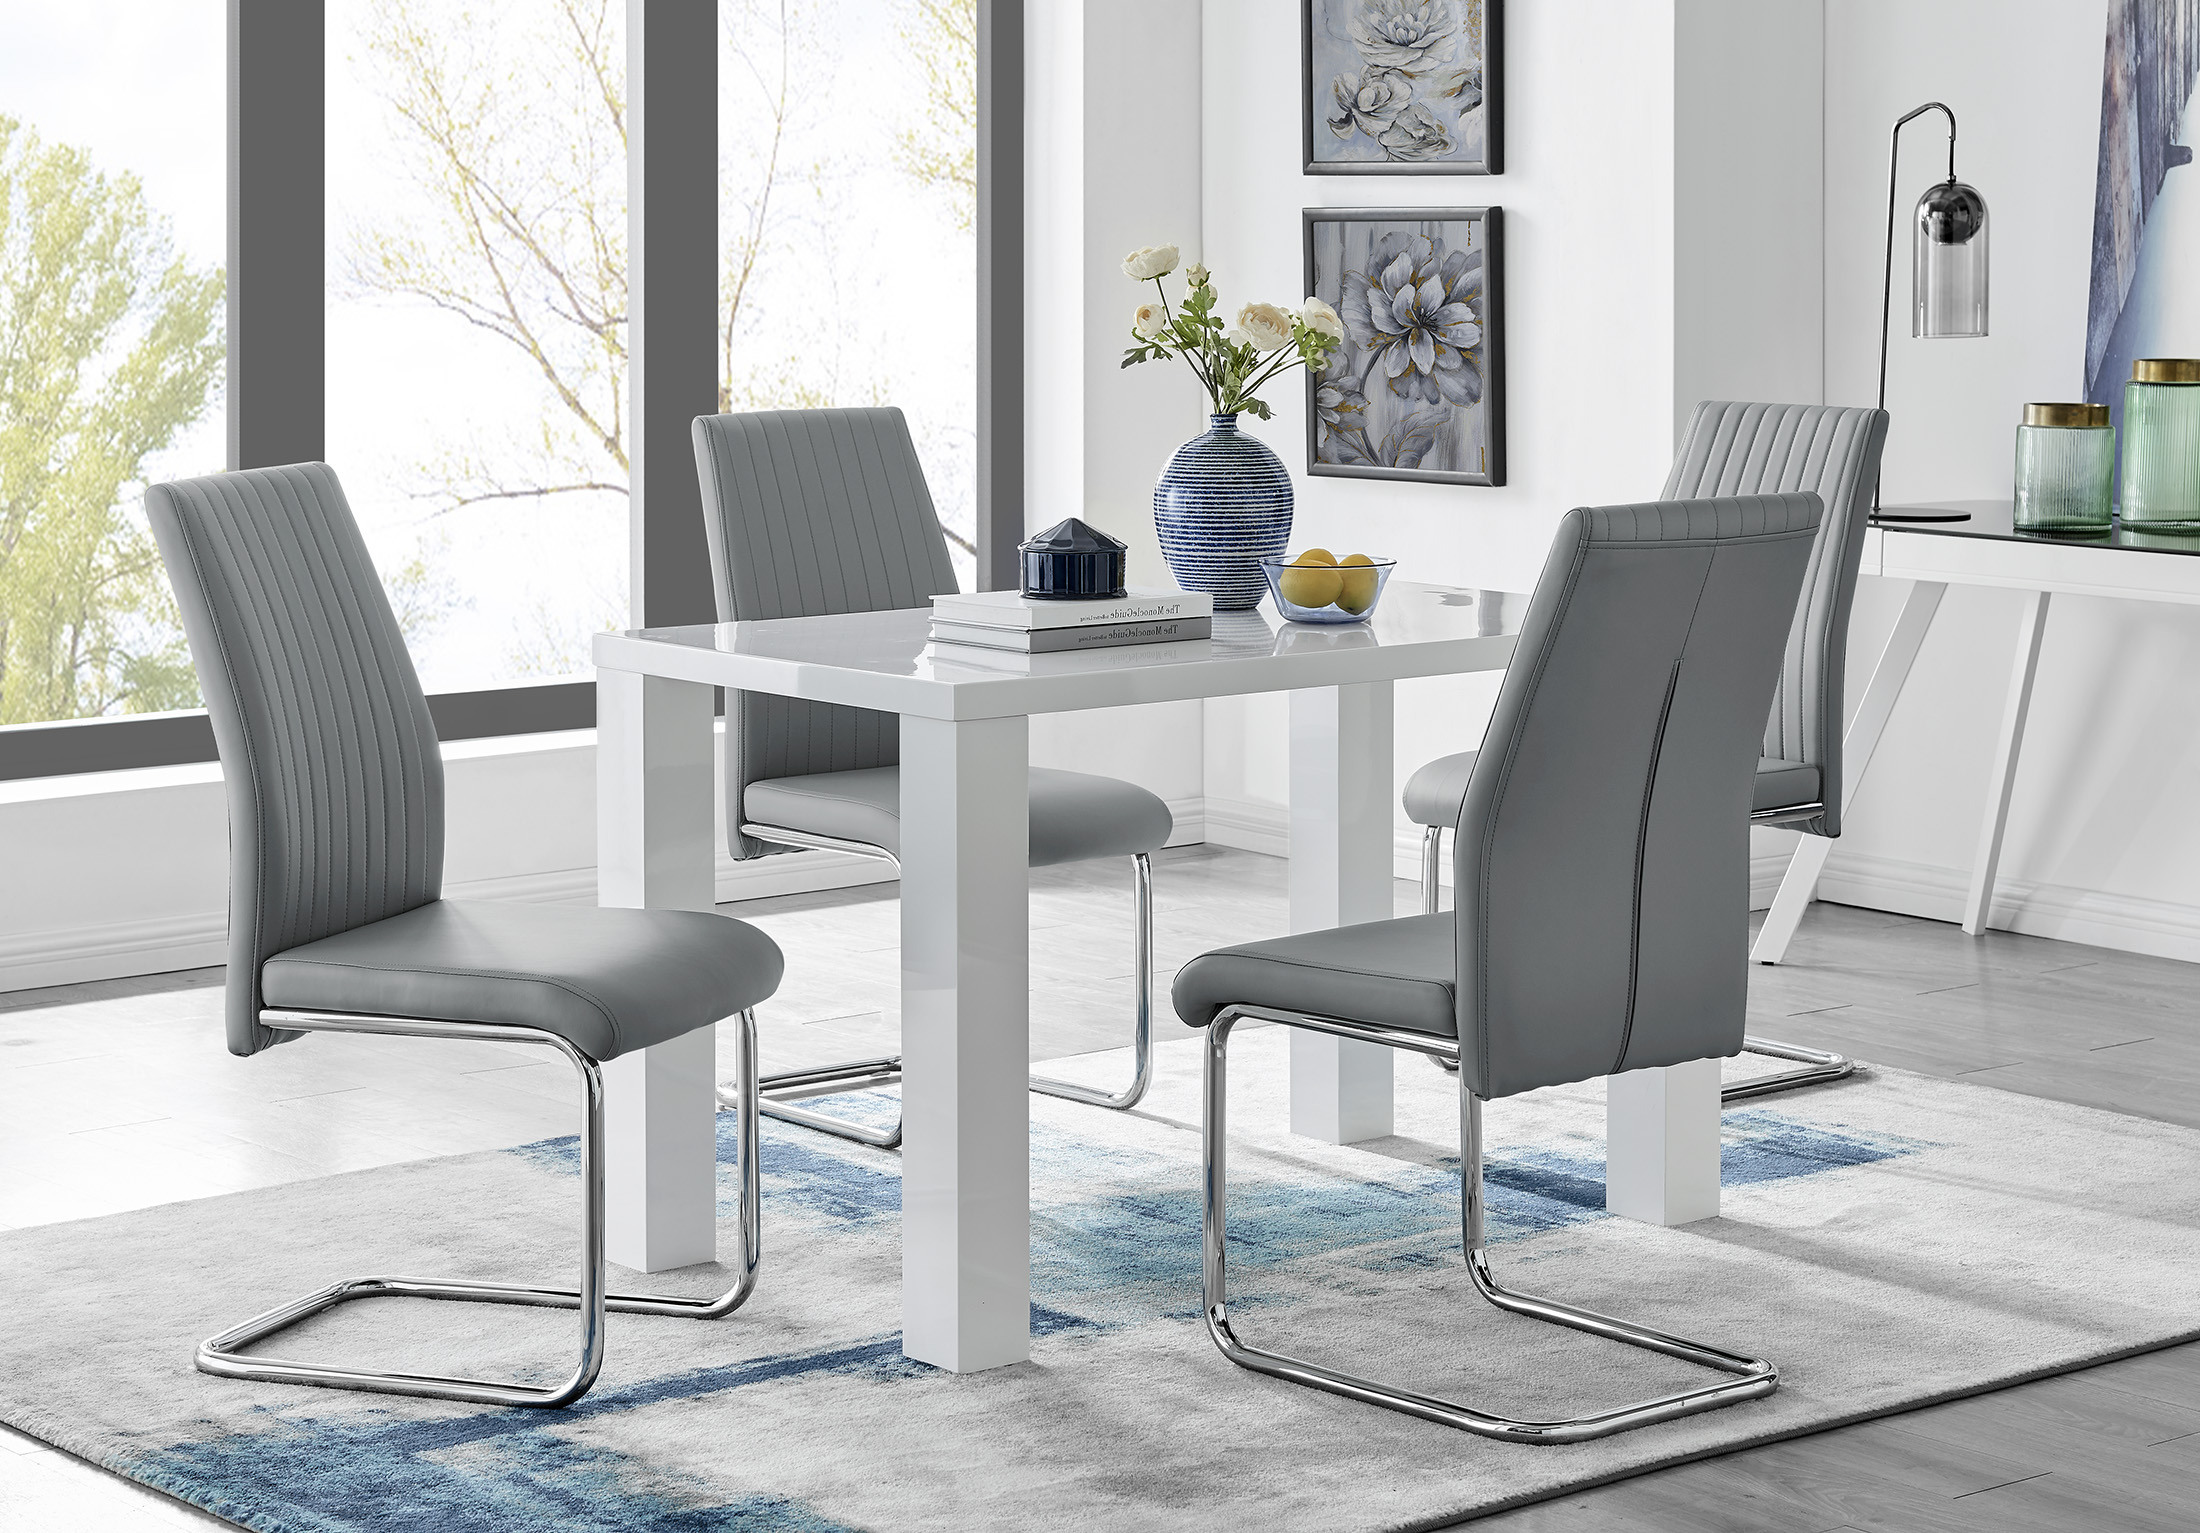 Pivero White High Gloss Dining Table And 9 Lorenzo Chairs Set